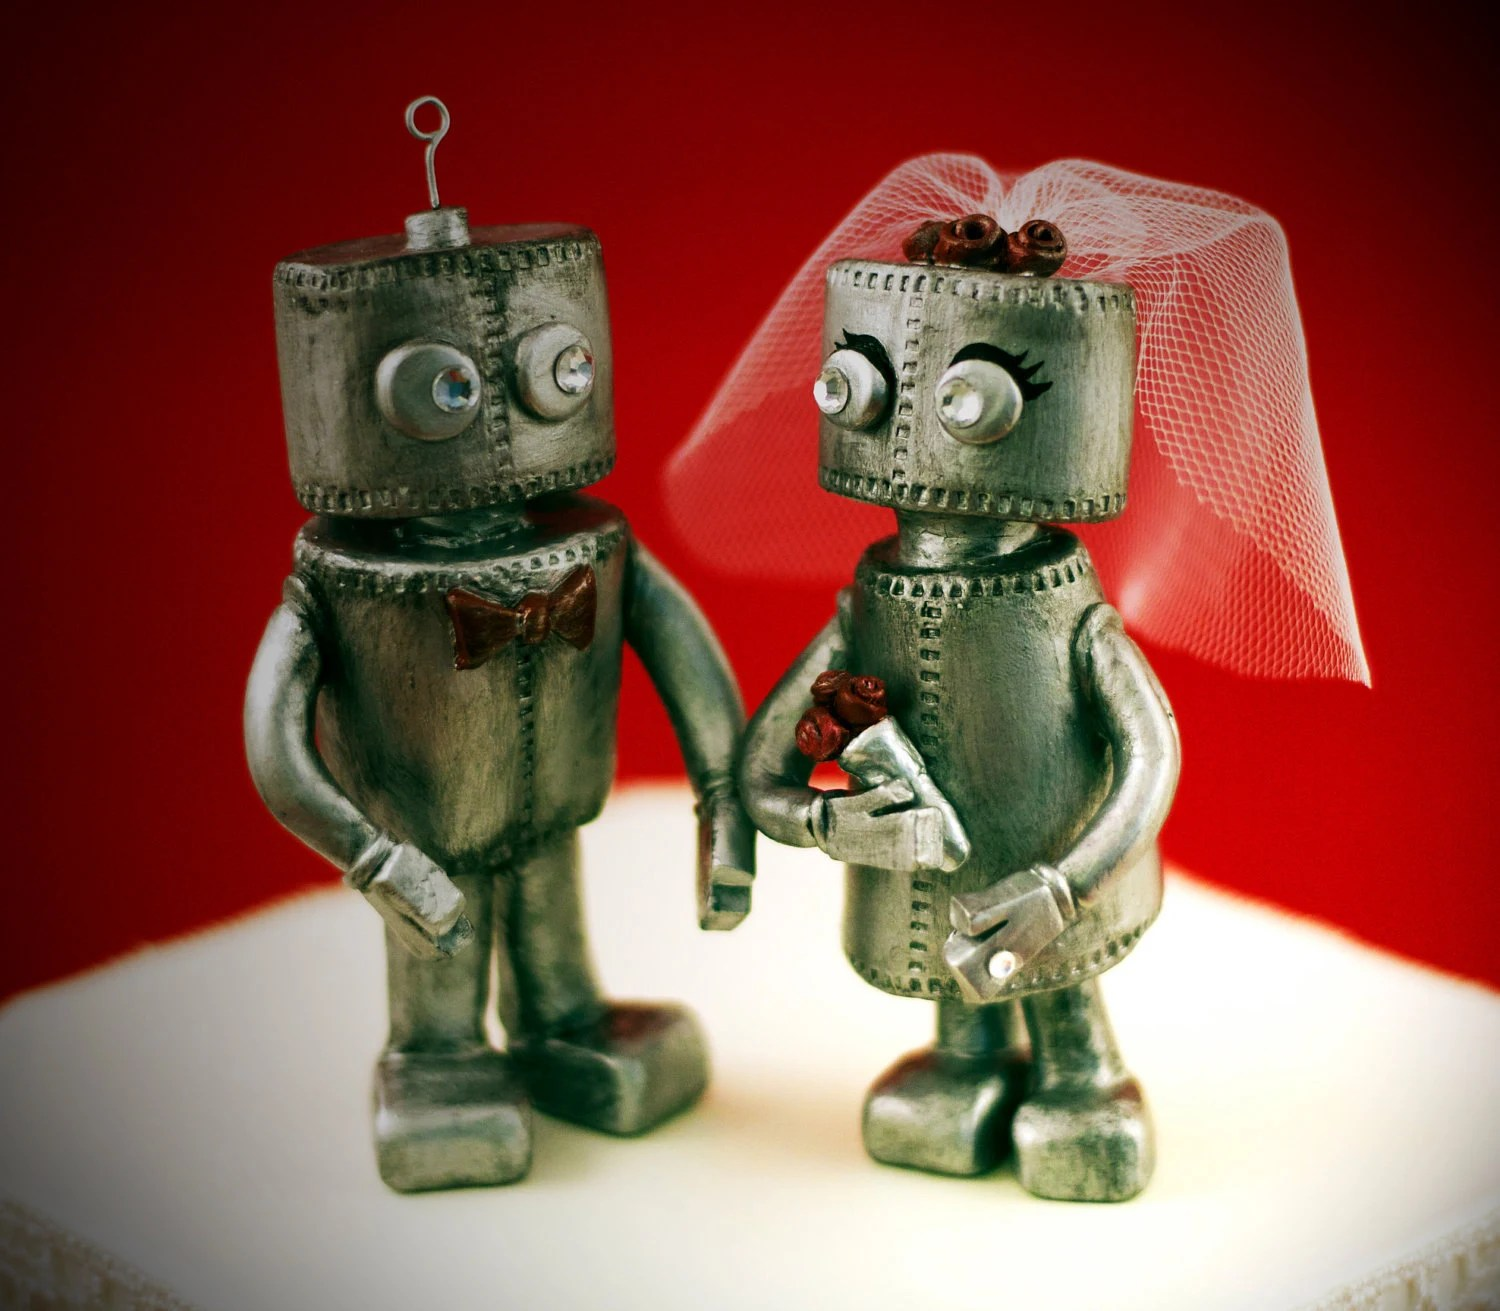 Custom Robot Wedding Cake Toppers - Personalized - jennibcreative